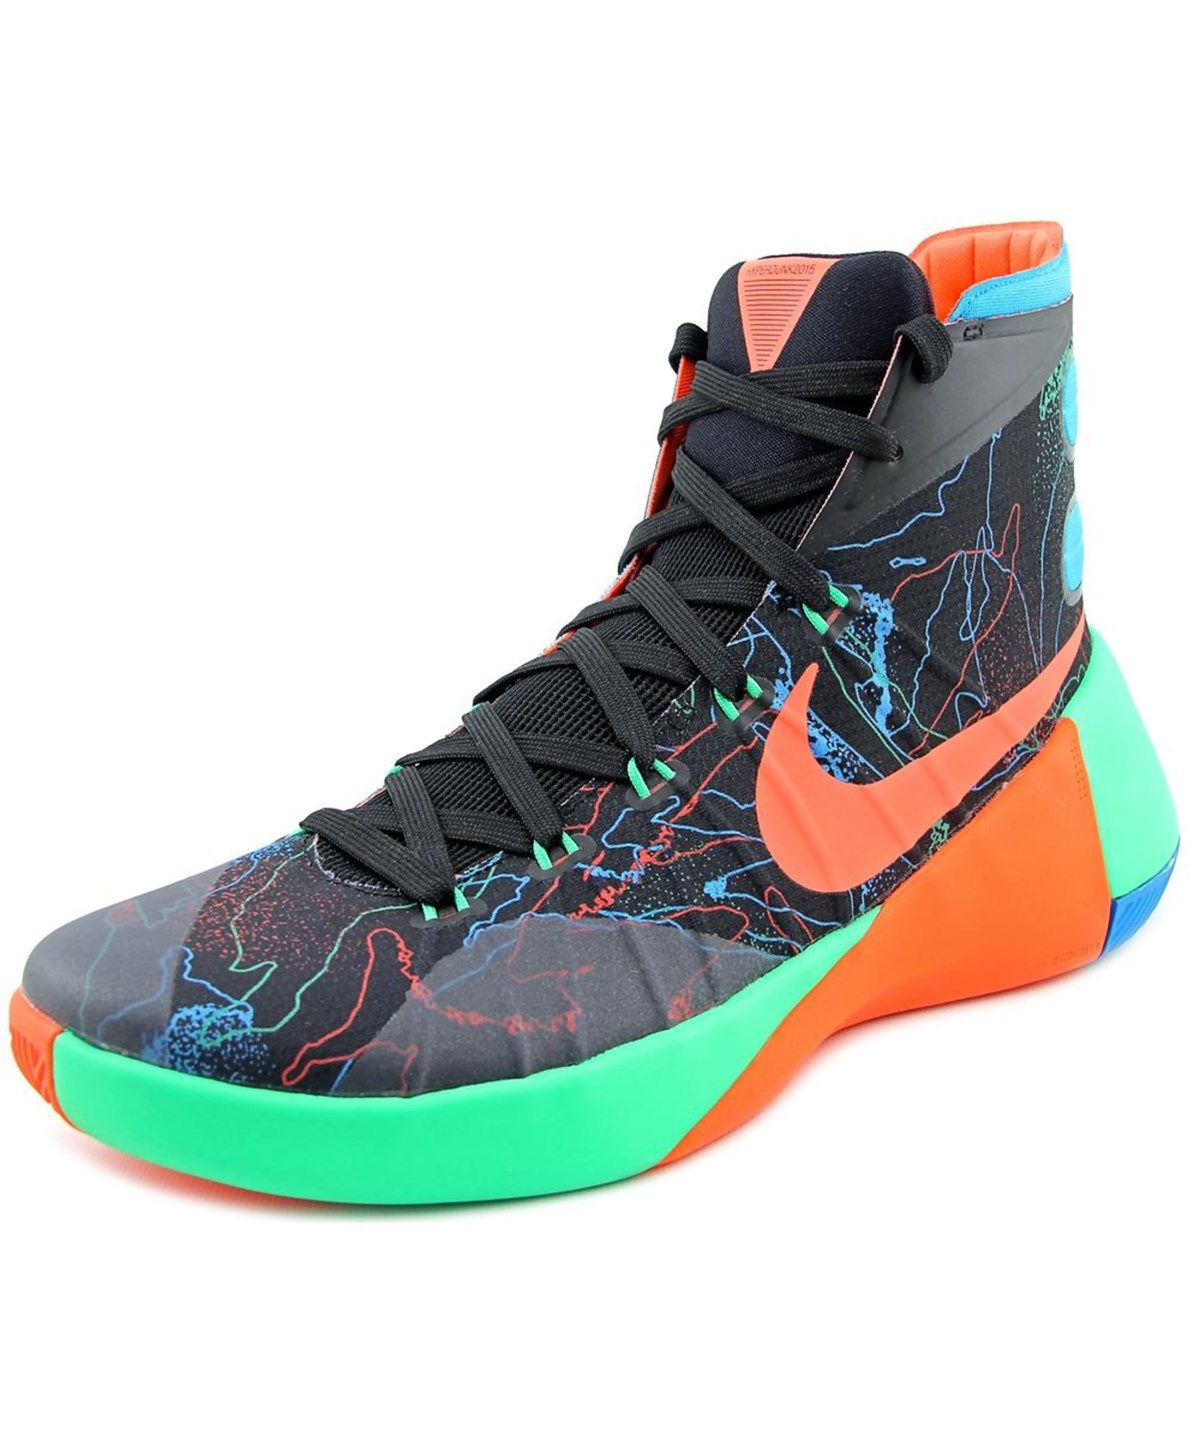 best service 1f7e7 09fce NIKE NIKE HYPERDUNK 2015 MEN ROUND TOE CANVAS BLACK BASKETBALL SHOE .  nike   shoes  sneakers